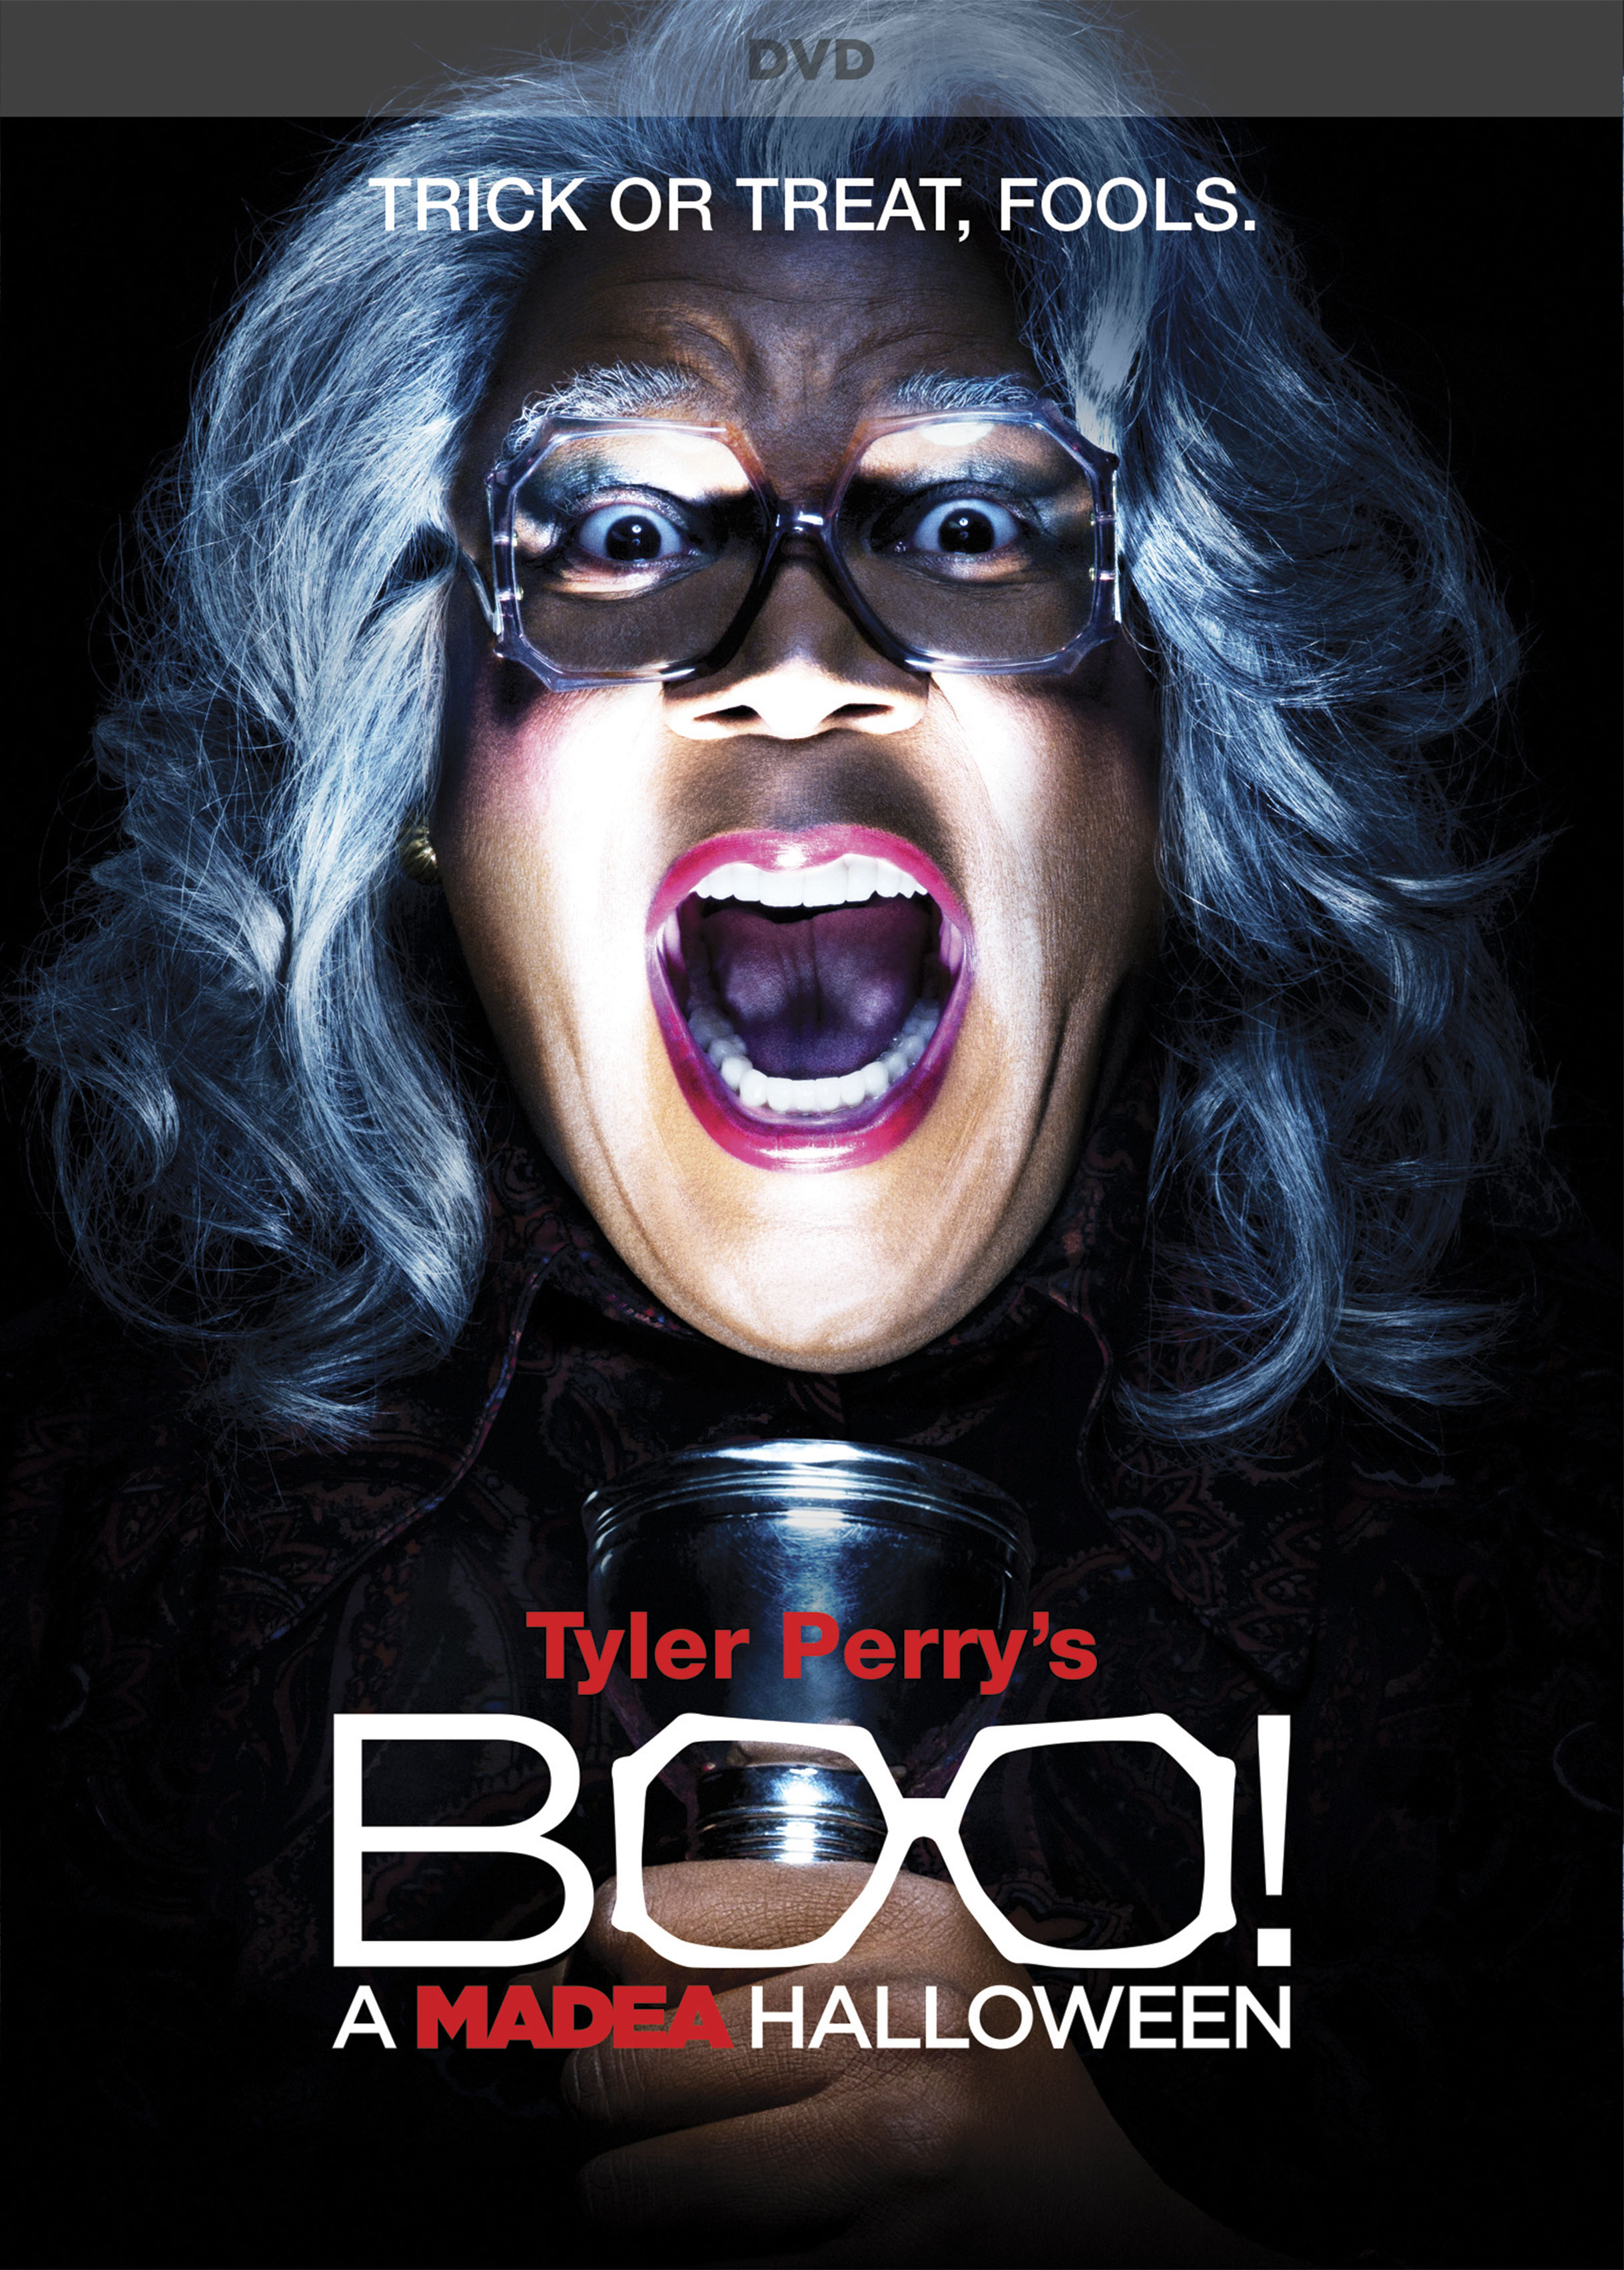 Tyler Perry's Boo! A Madea Halloween (DVD) movies in